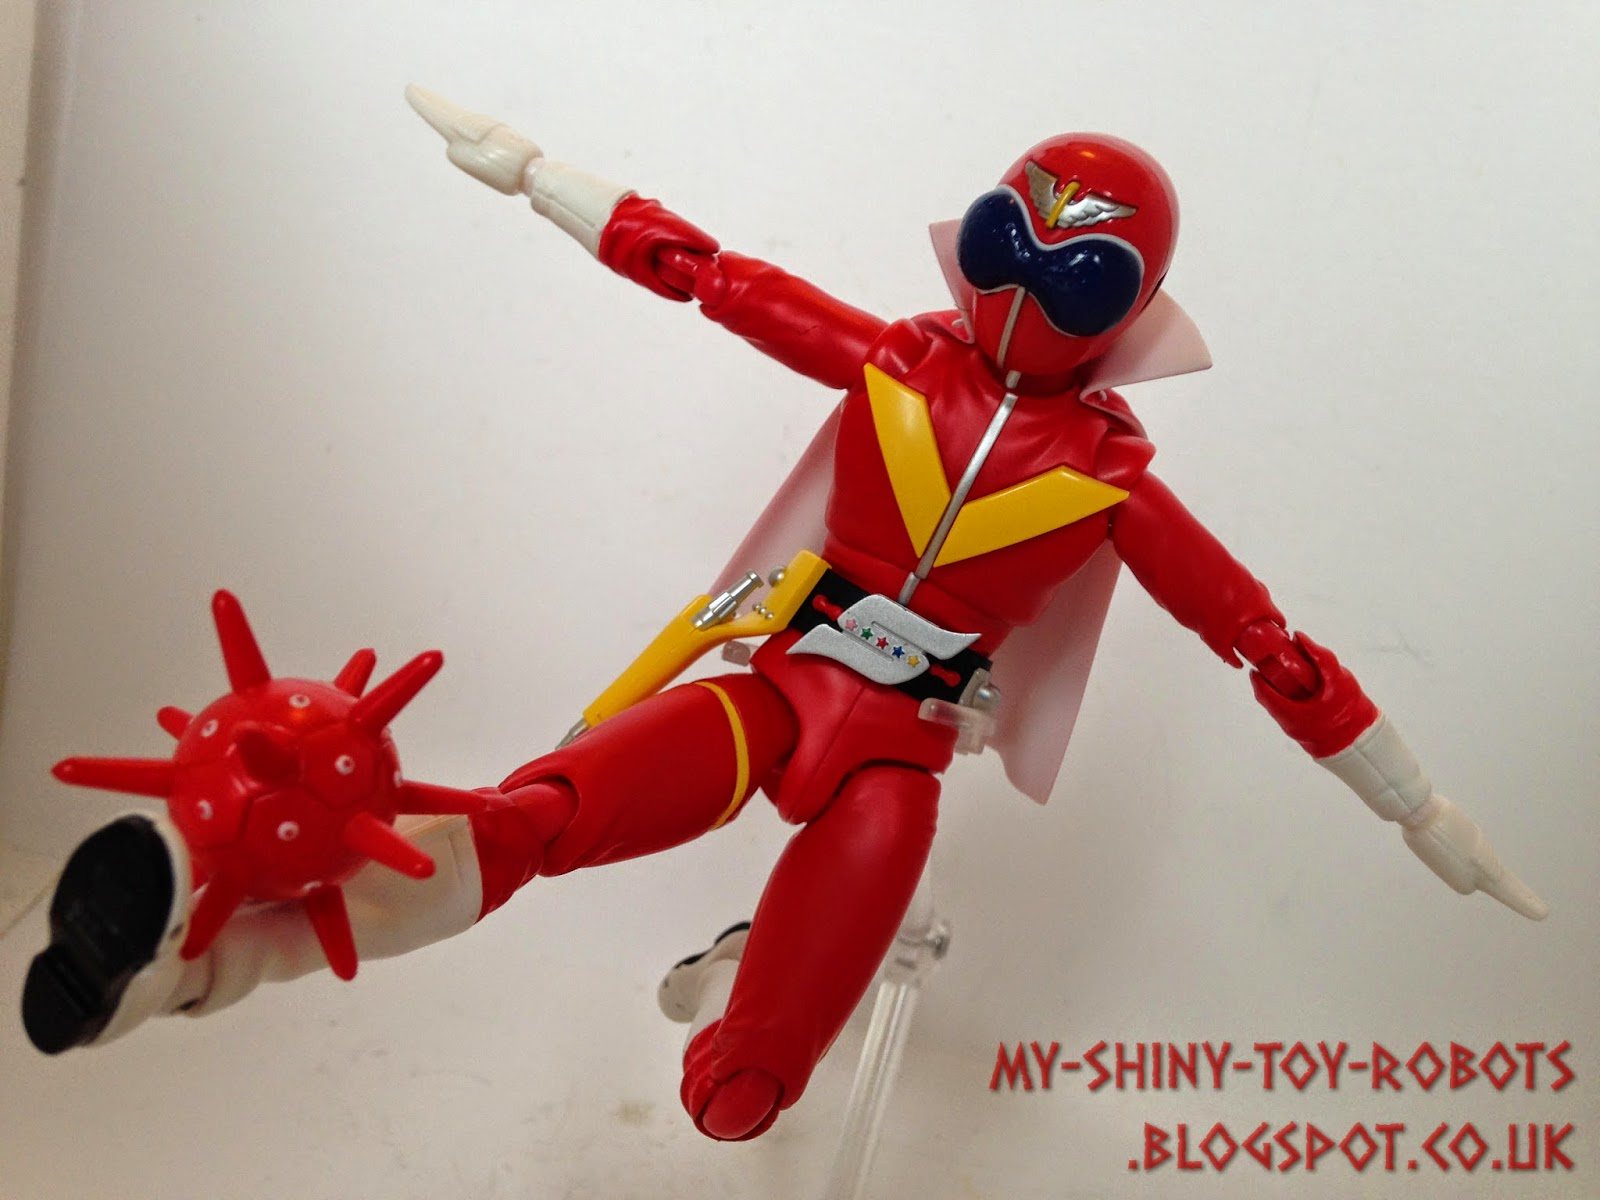 The Goranger storm ball